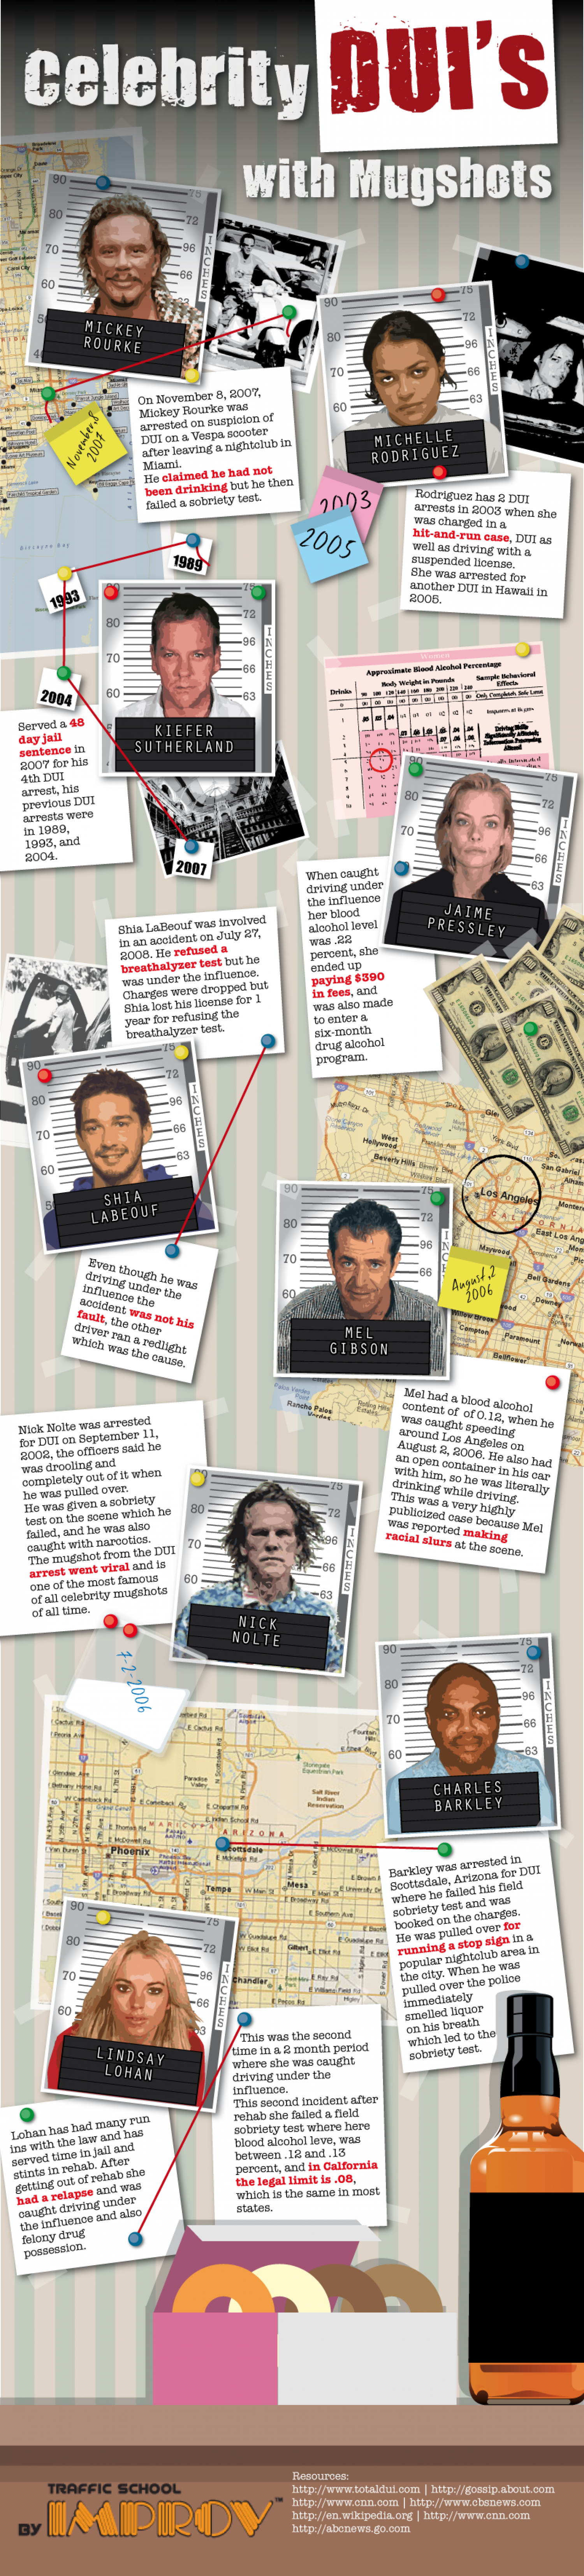 Celebrity DUIs with Mugshots Infographic